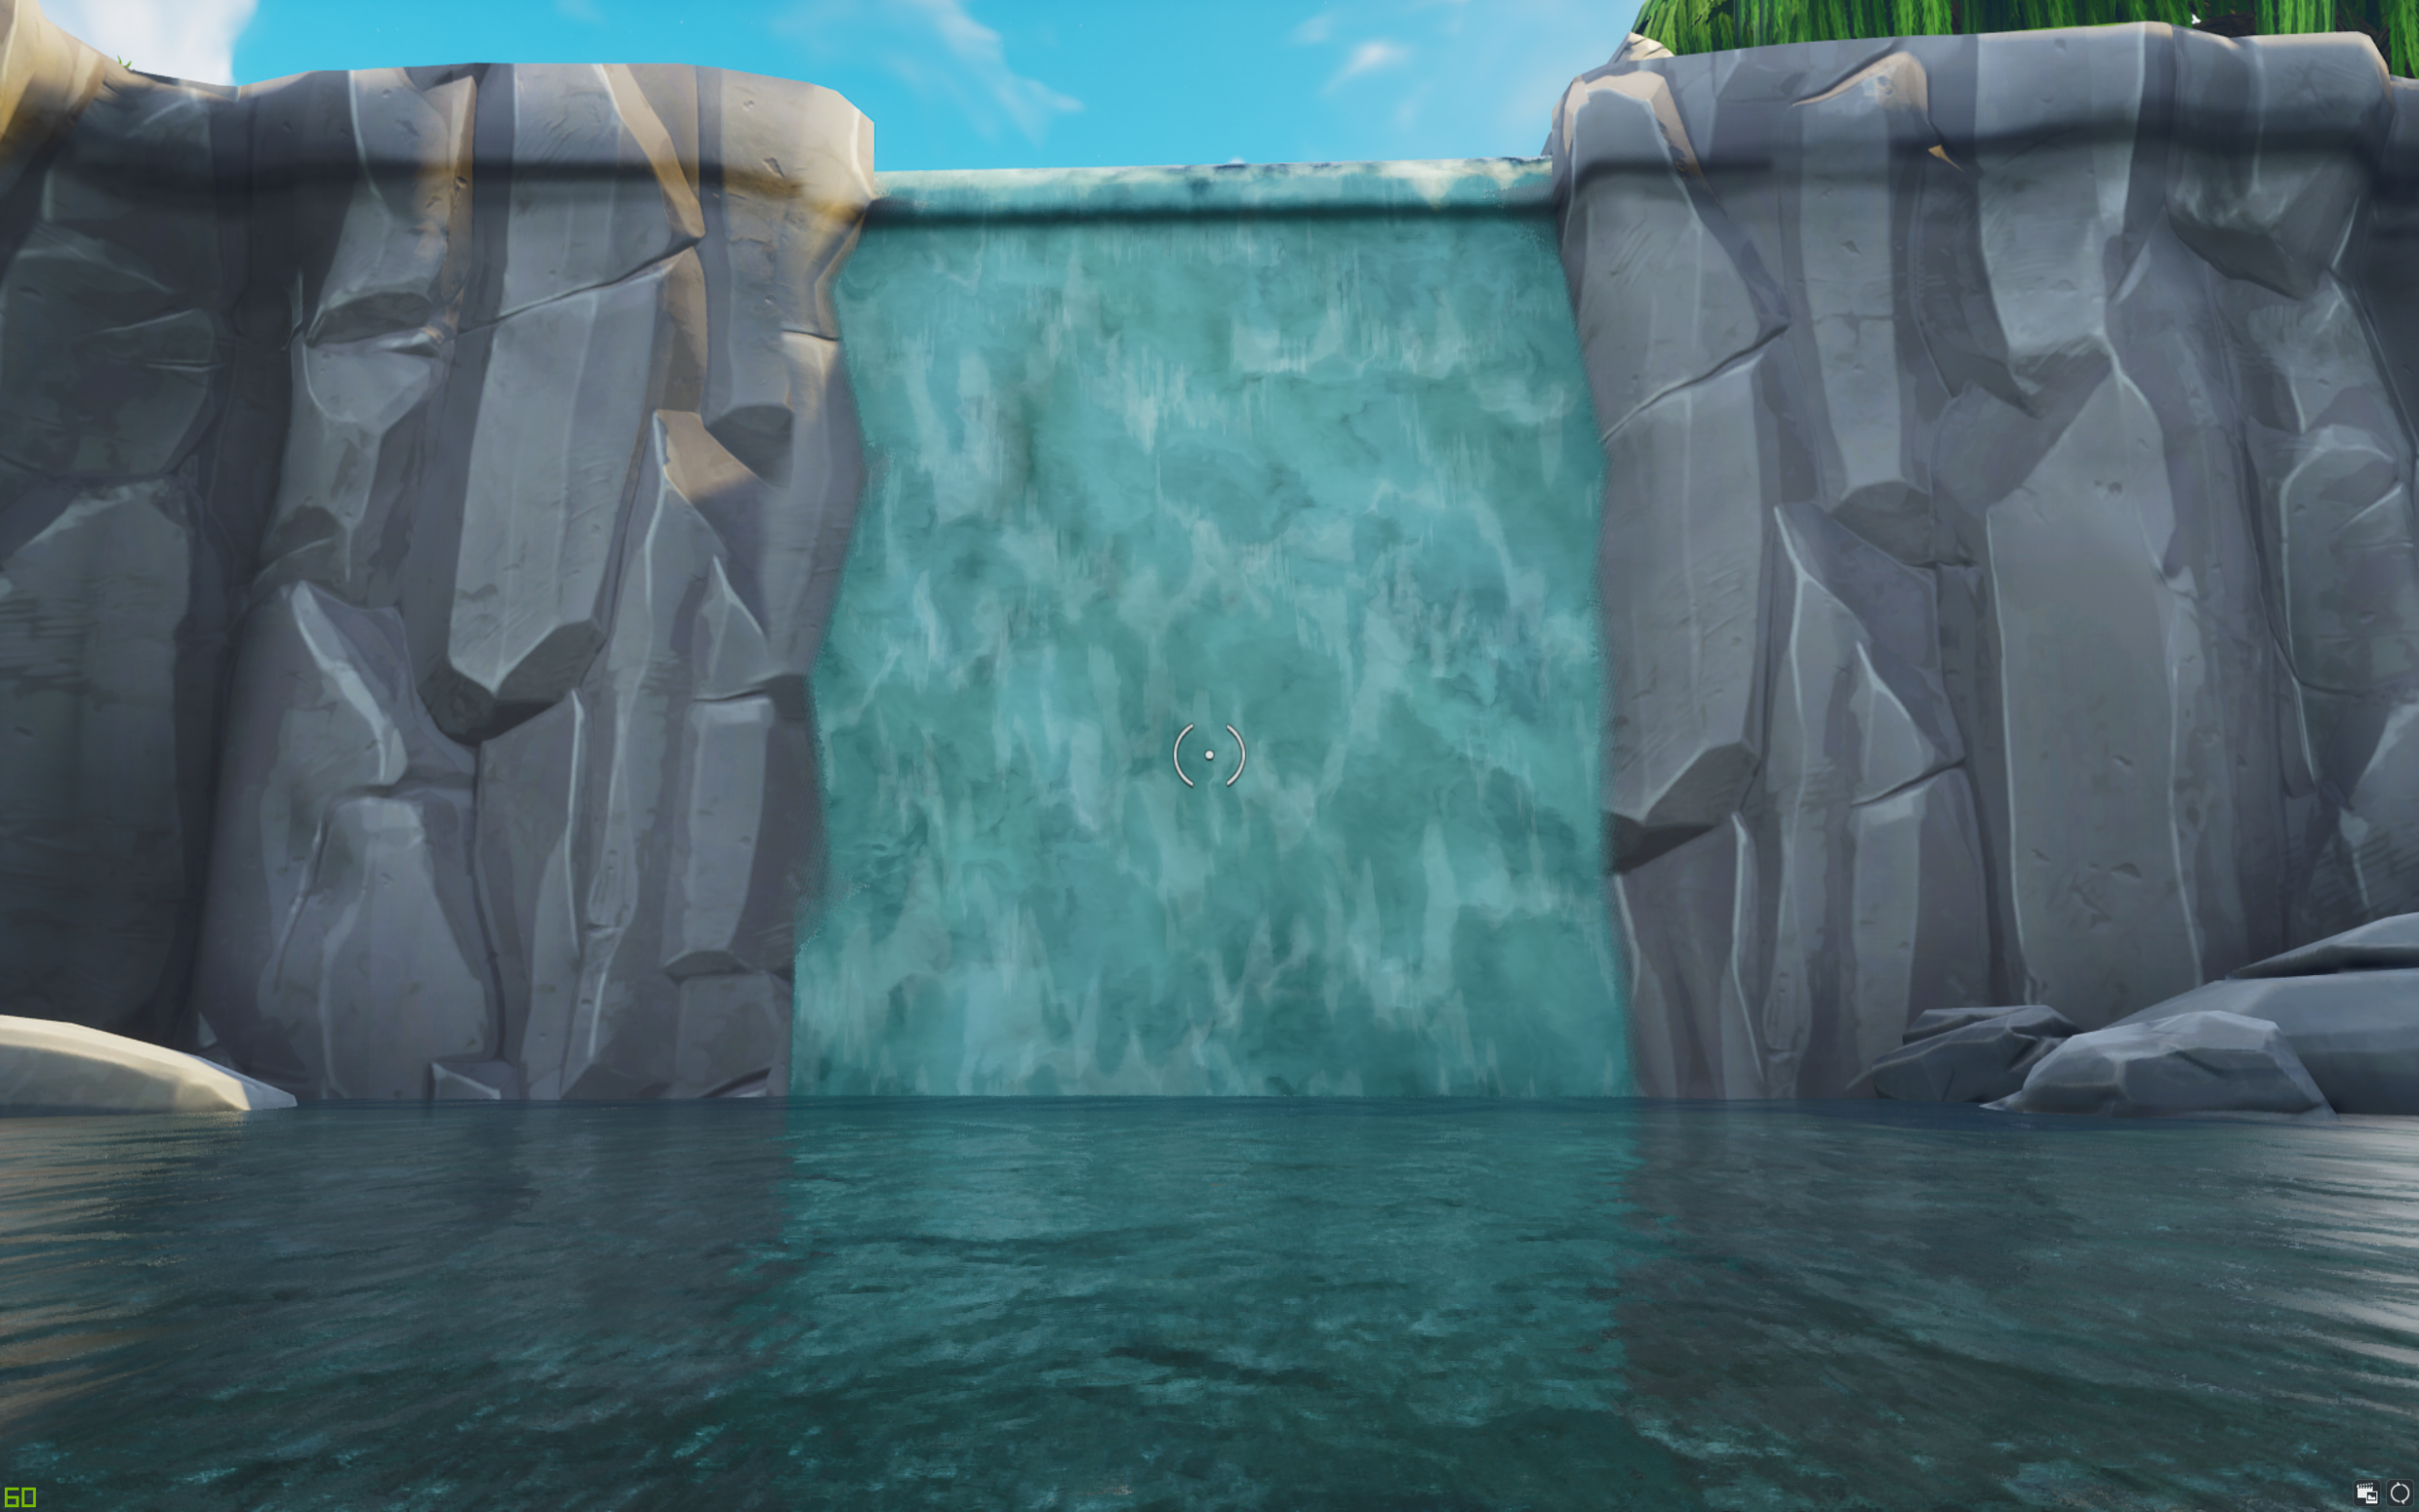 Fortnite Overtime Challenges Where To Find Different Waterfall - fortnite where to find 7 water locations overtime challenge